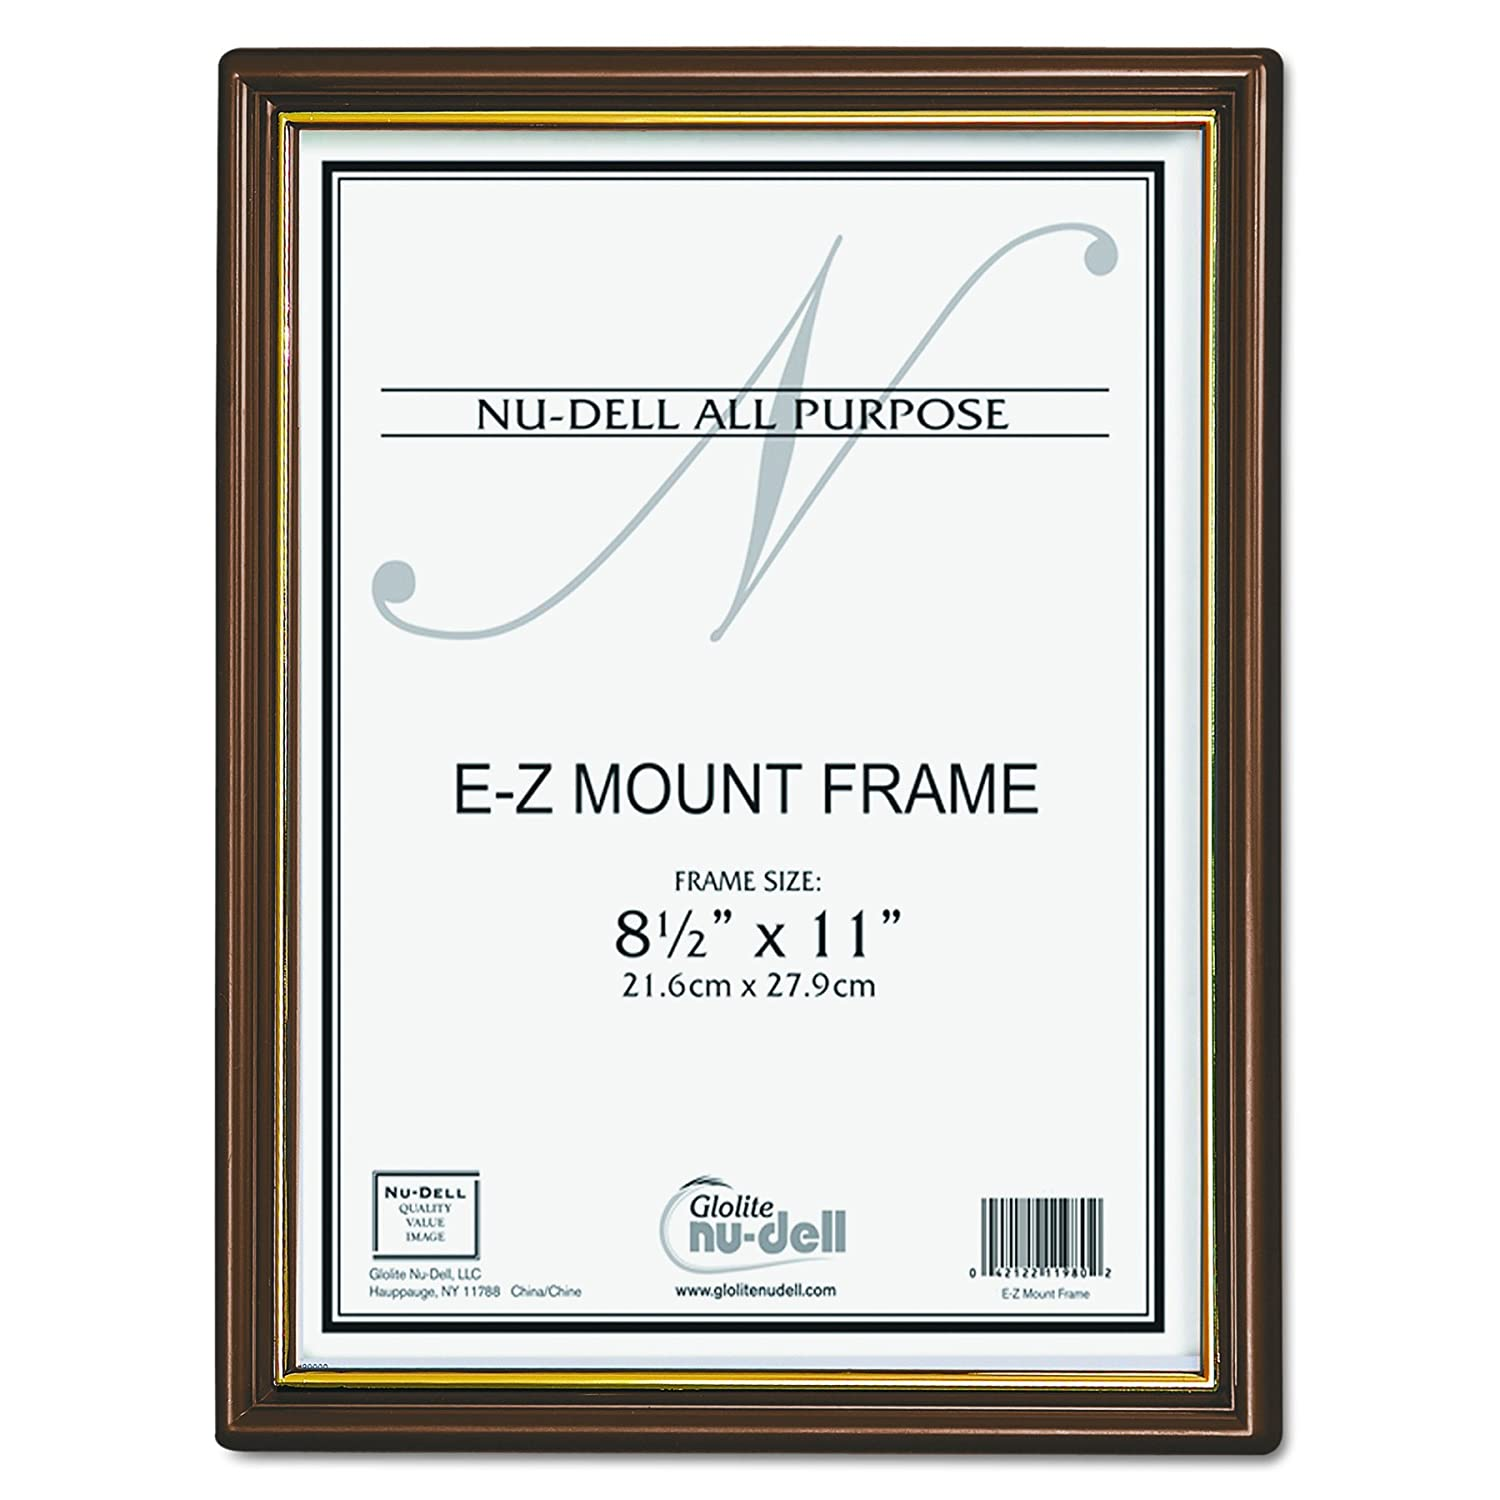 NuDell 8.5 x 11 Inches EZ Mount Document Frame Plastic Face, Black with Gold Trim 11880